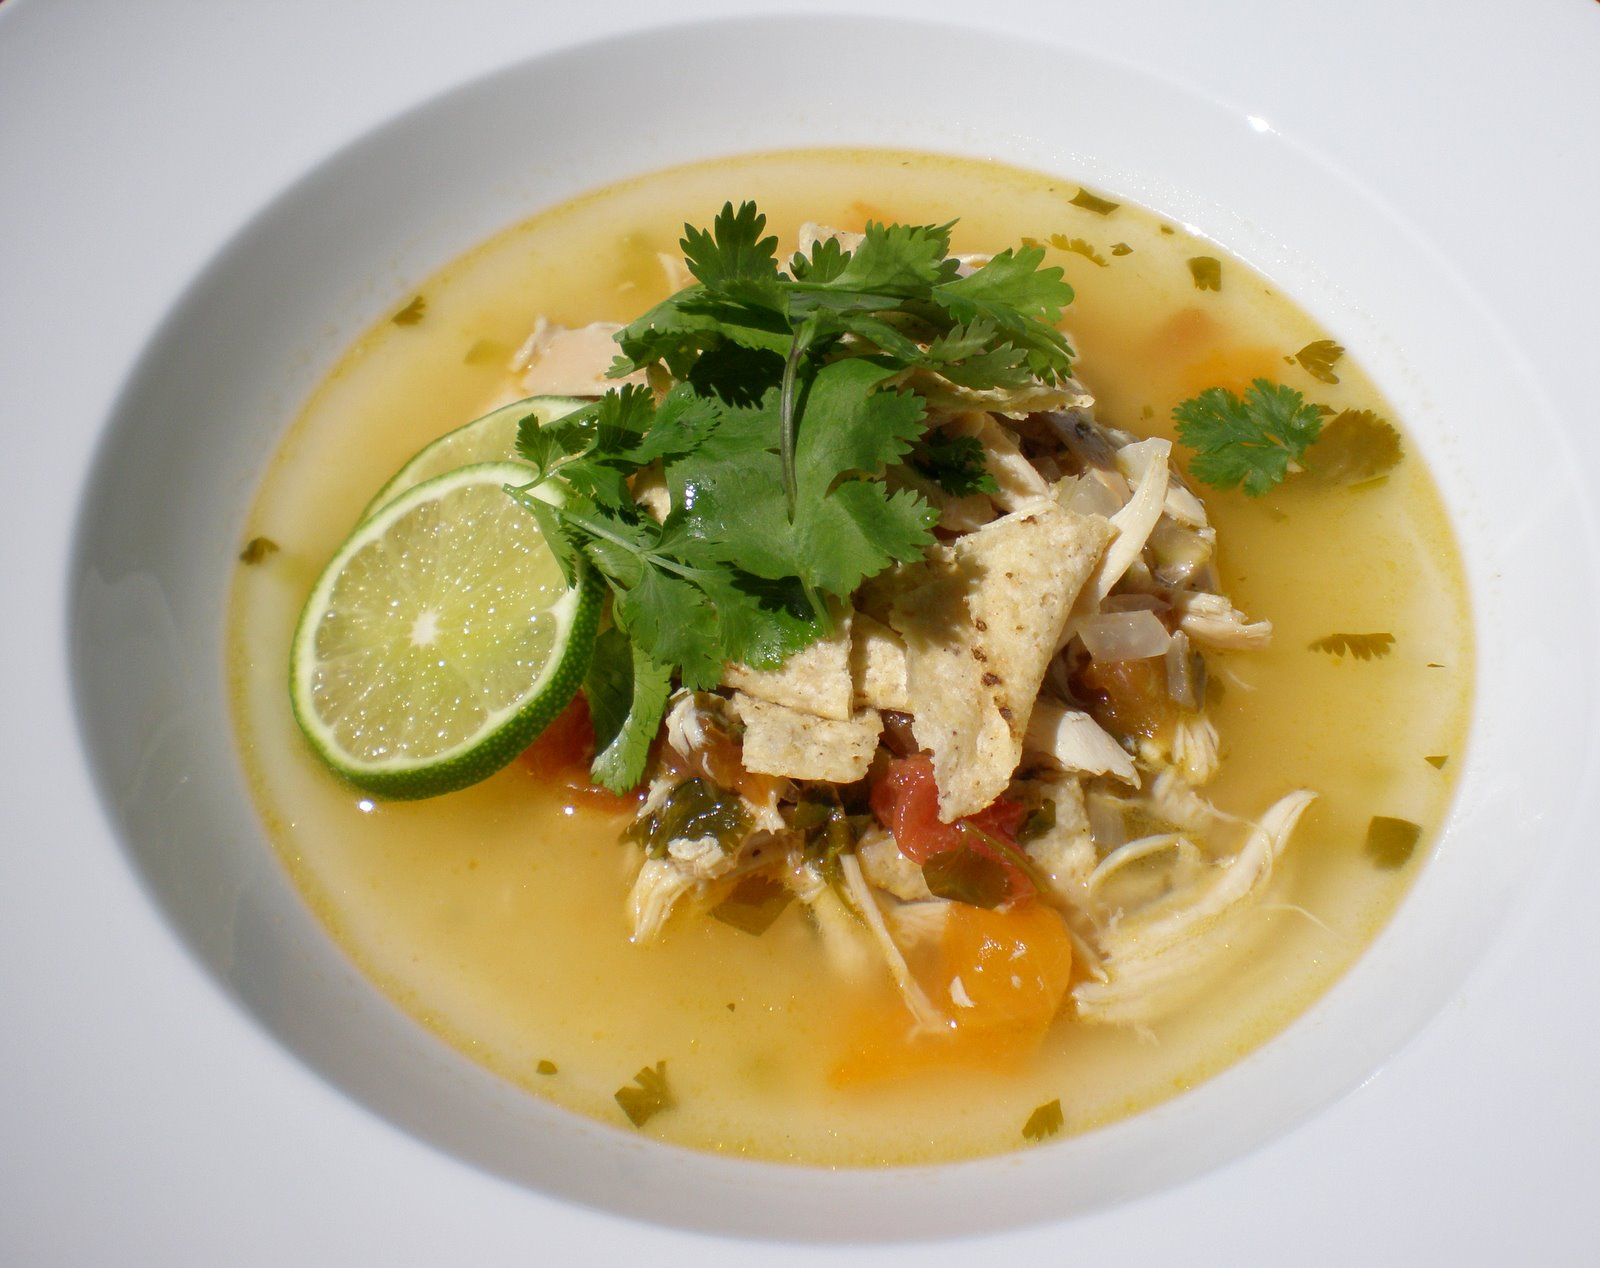 Authentic suburban gourmet chicken lime and chile soup